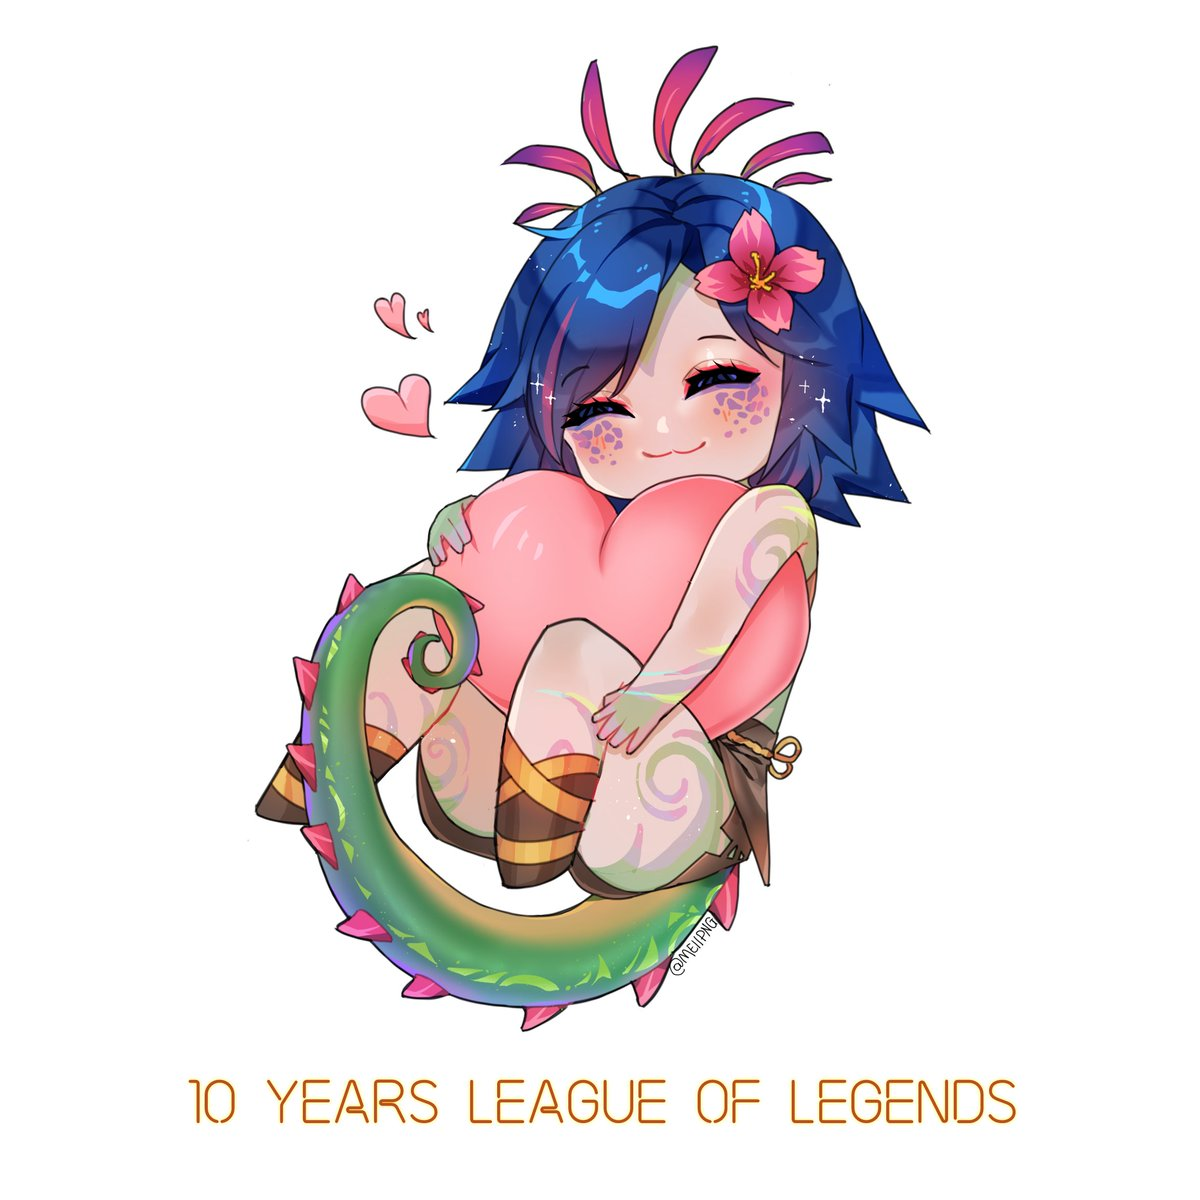 I love Neeko sm!!! My contribution for @LeagueOfLegends anniversary 💕🥳 #League10 #LeagueOfLegends #neeko